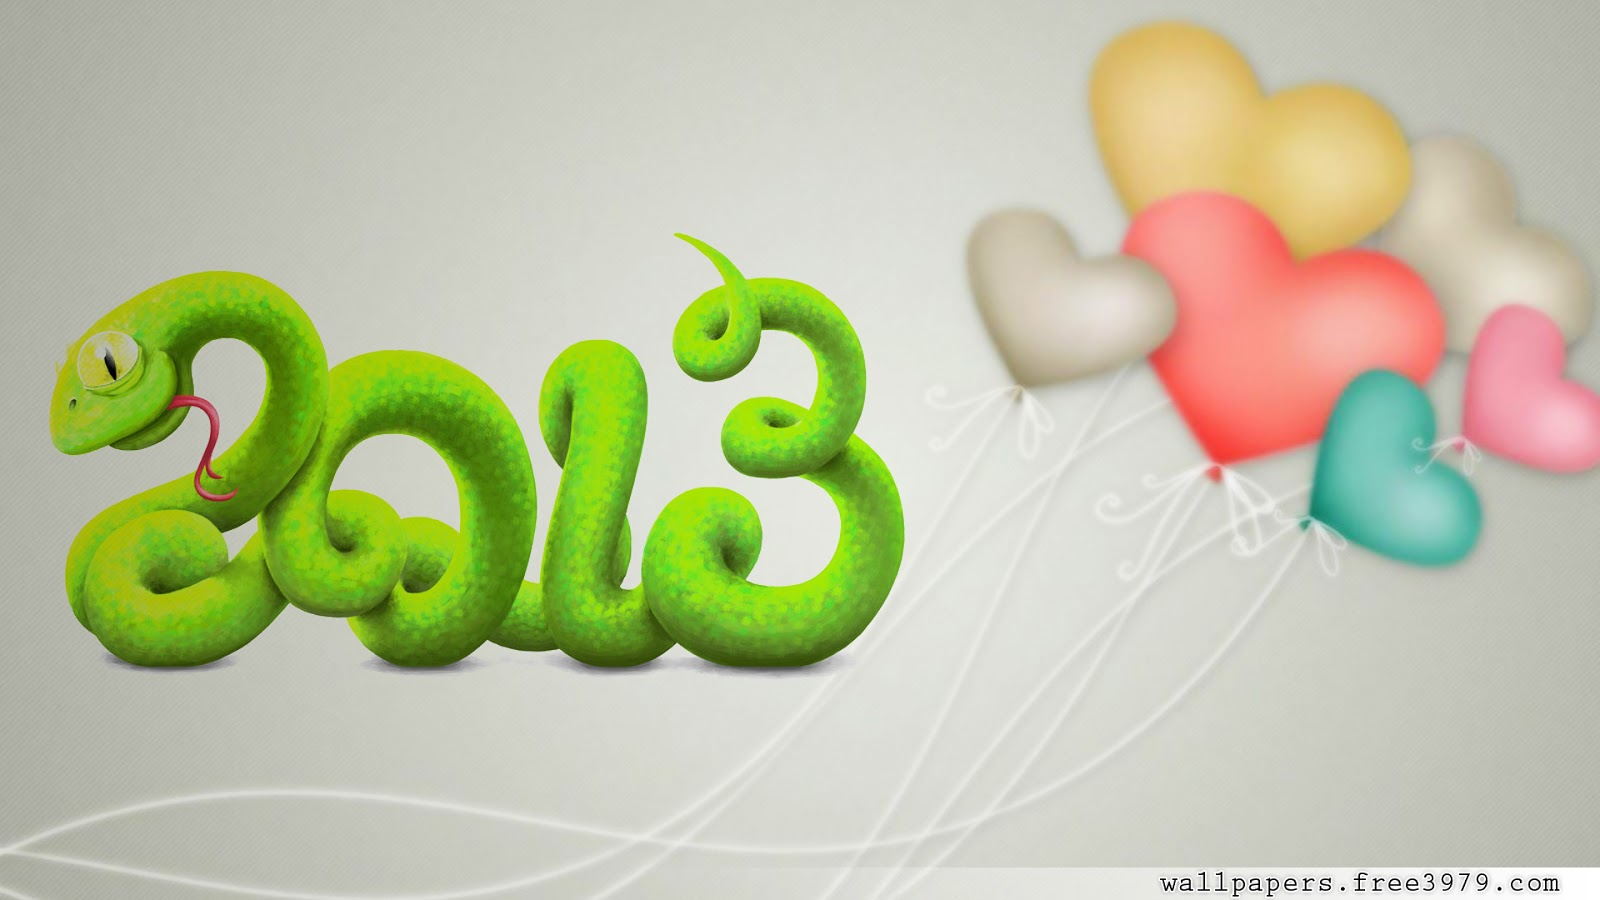 2013 Snake 3D Happy New Year